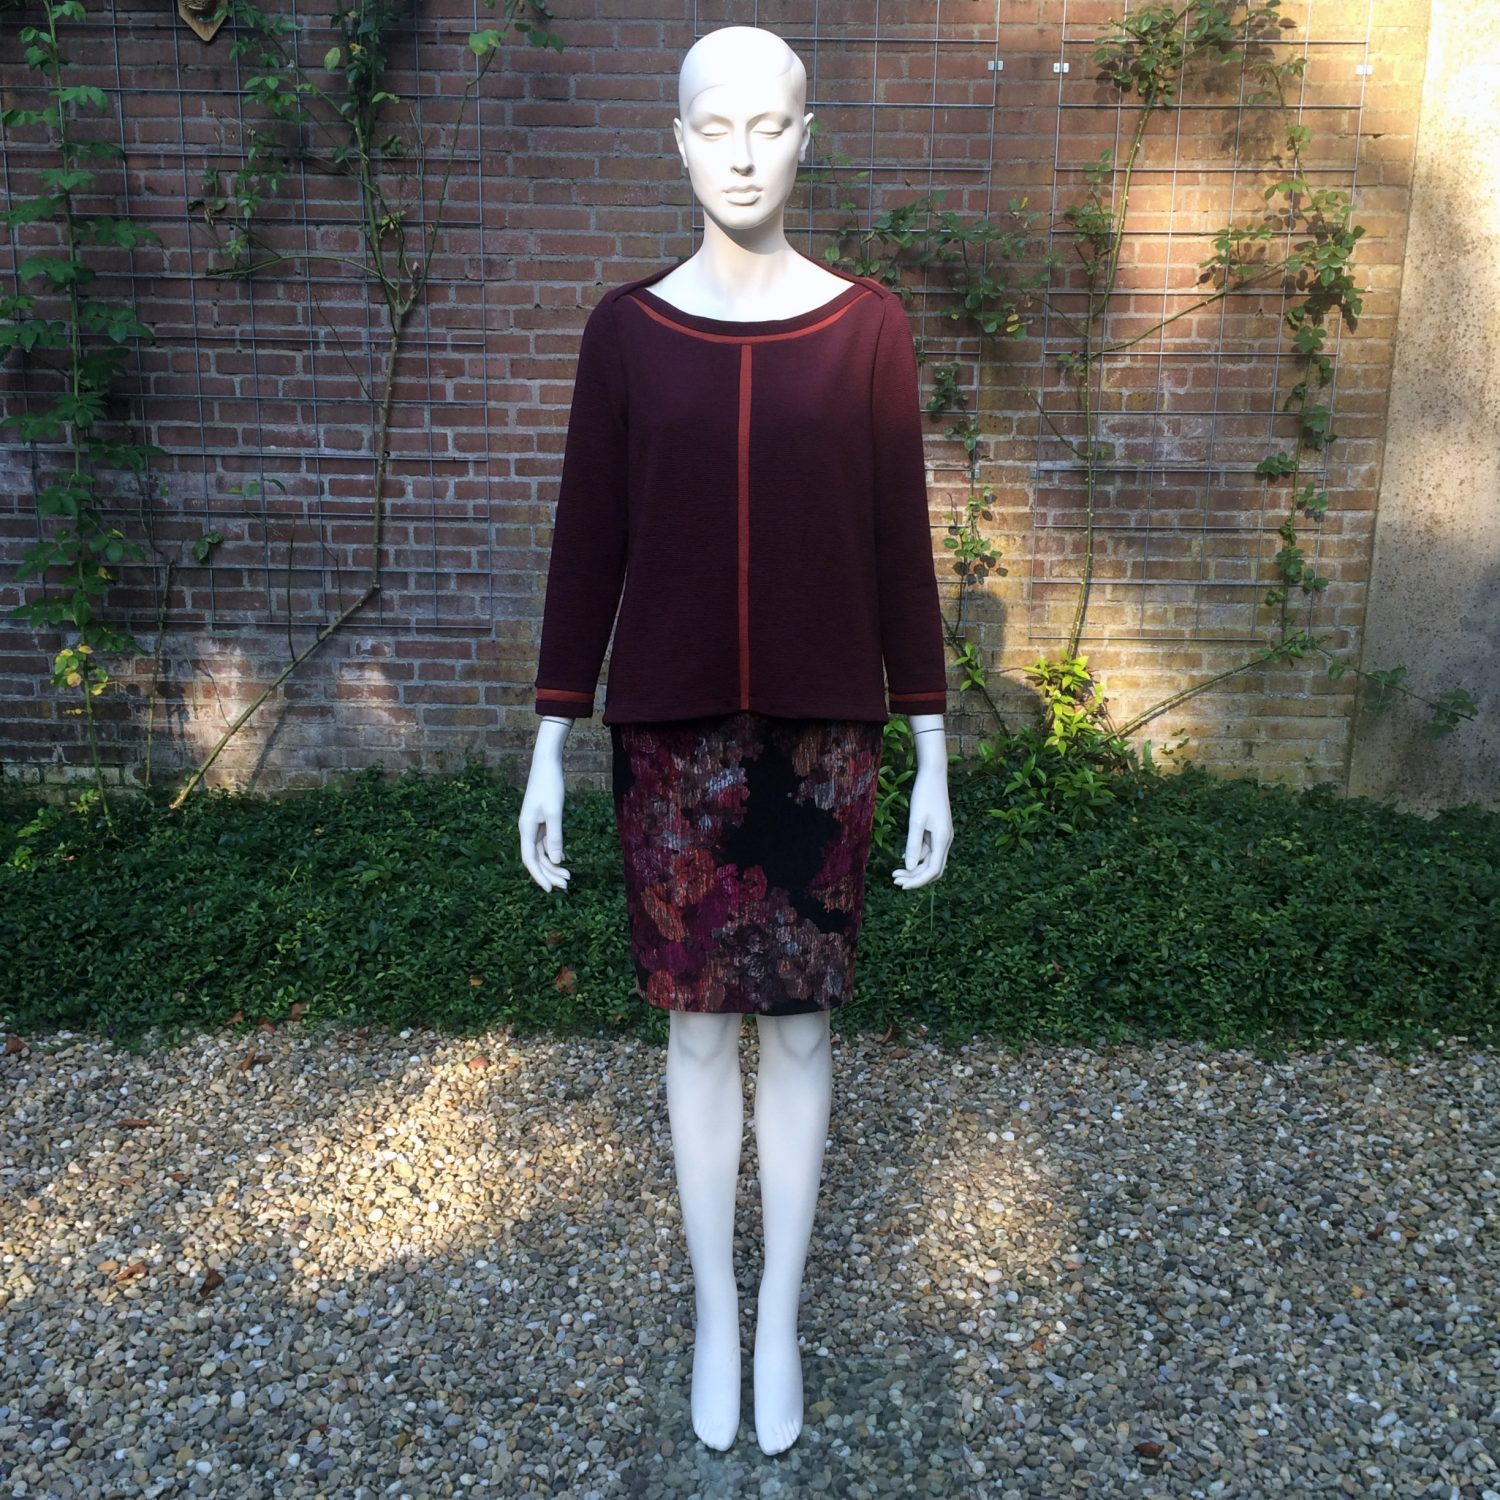 Chris Meijers collectie herfst 2016 shirt en rok 1608